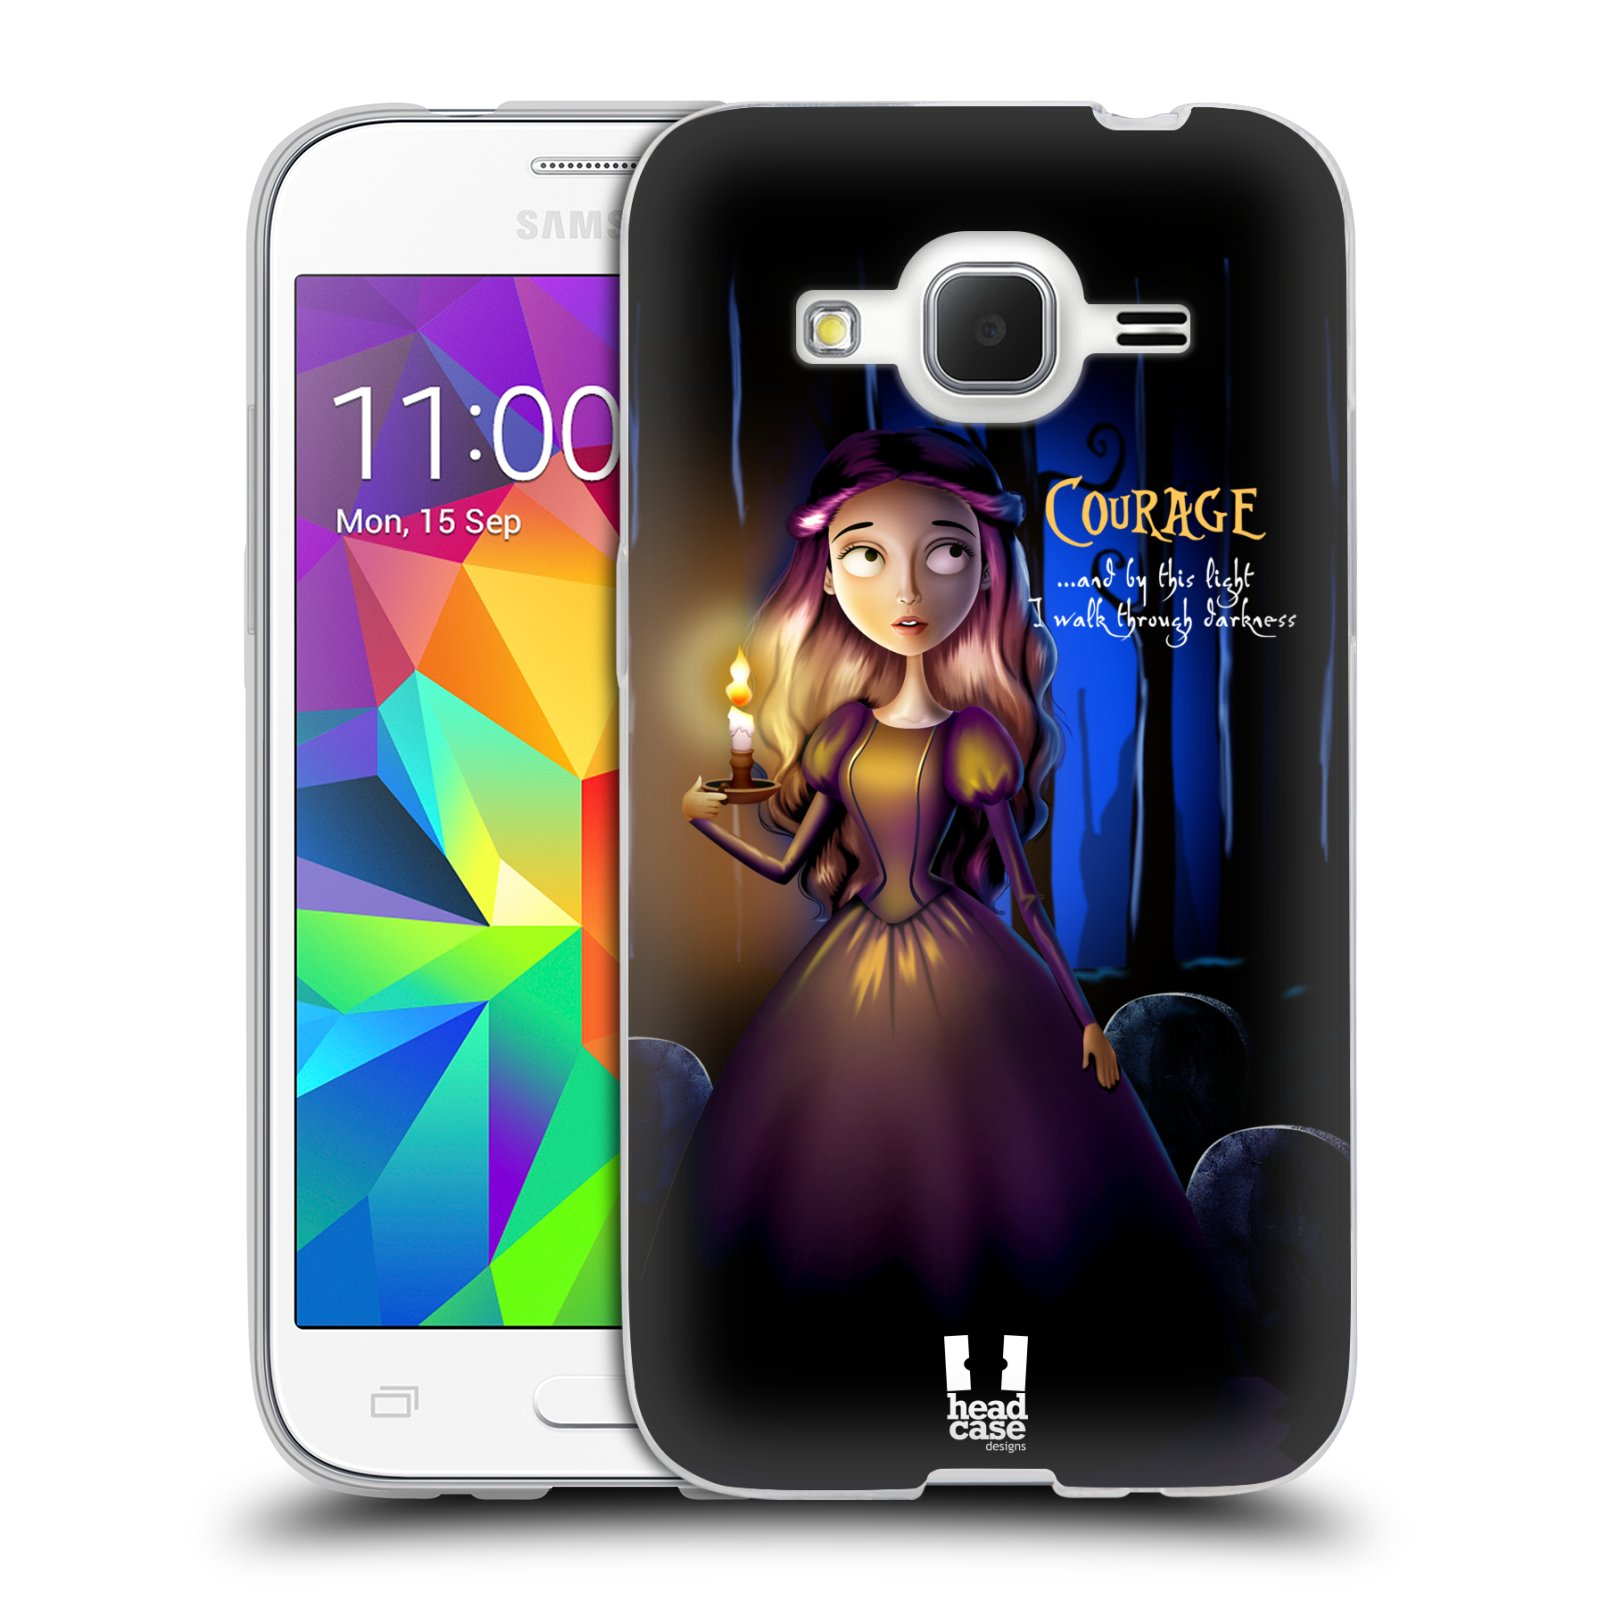 Silikonové pouzdro na mobil Samsung Galaxy Core Prime VE HEAD CASE MACABRE COURAGE